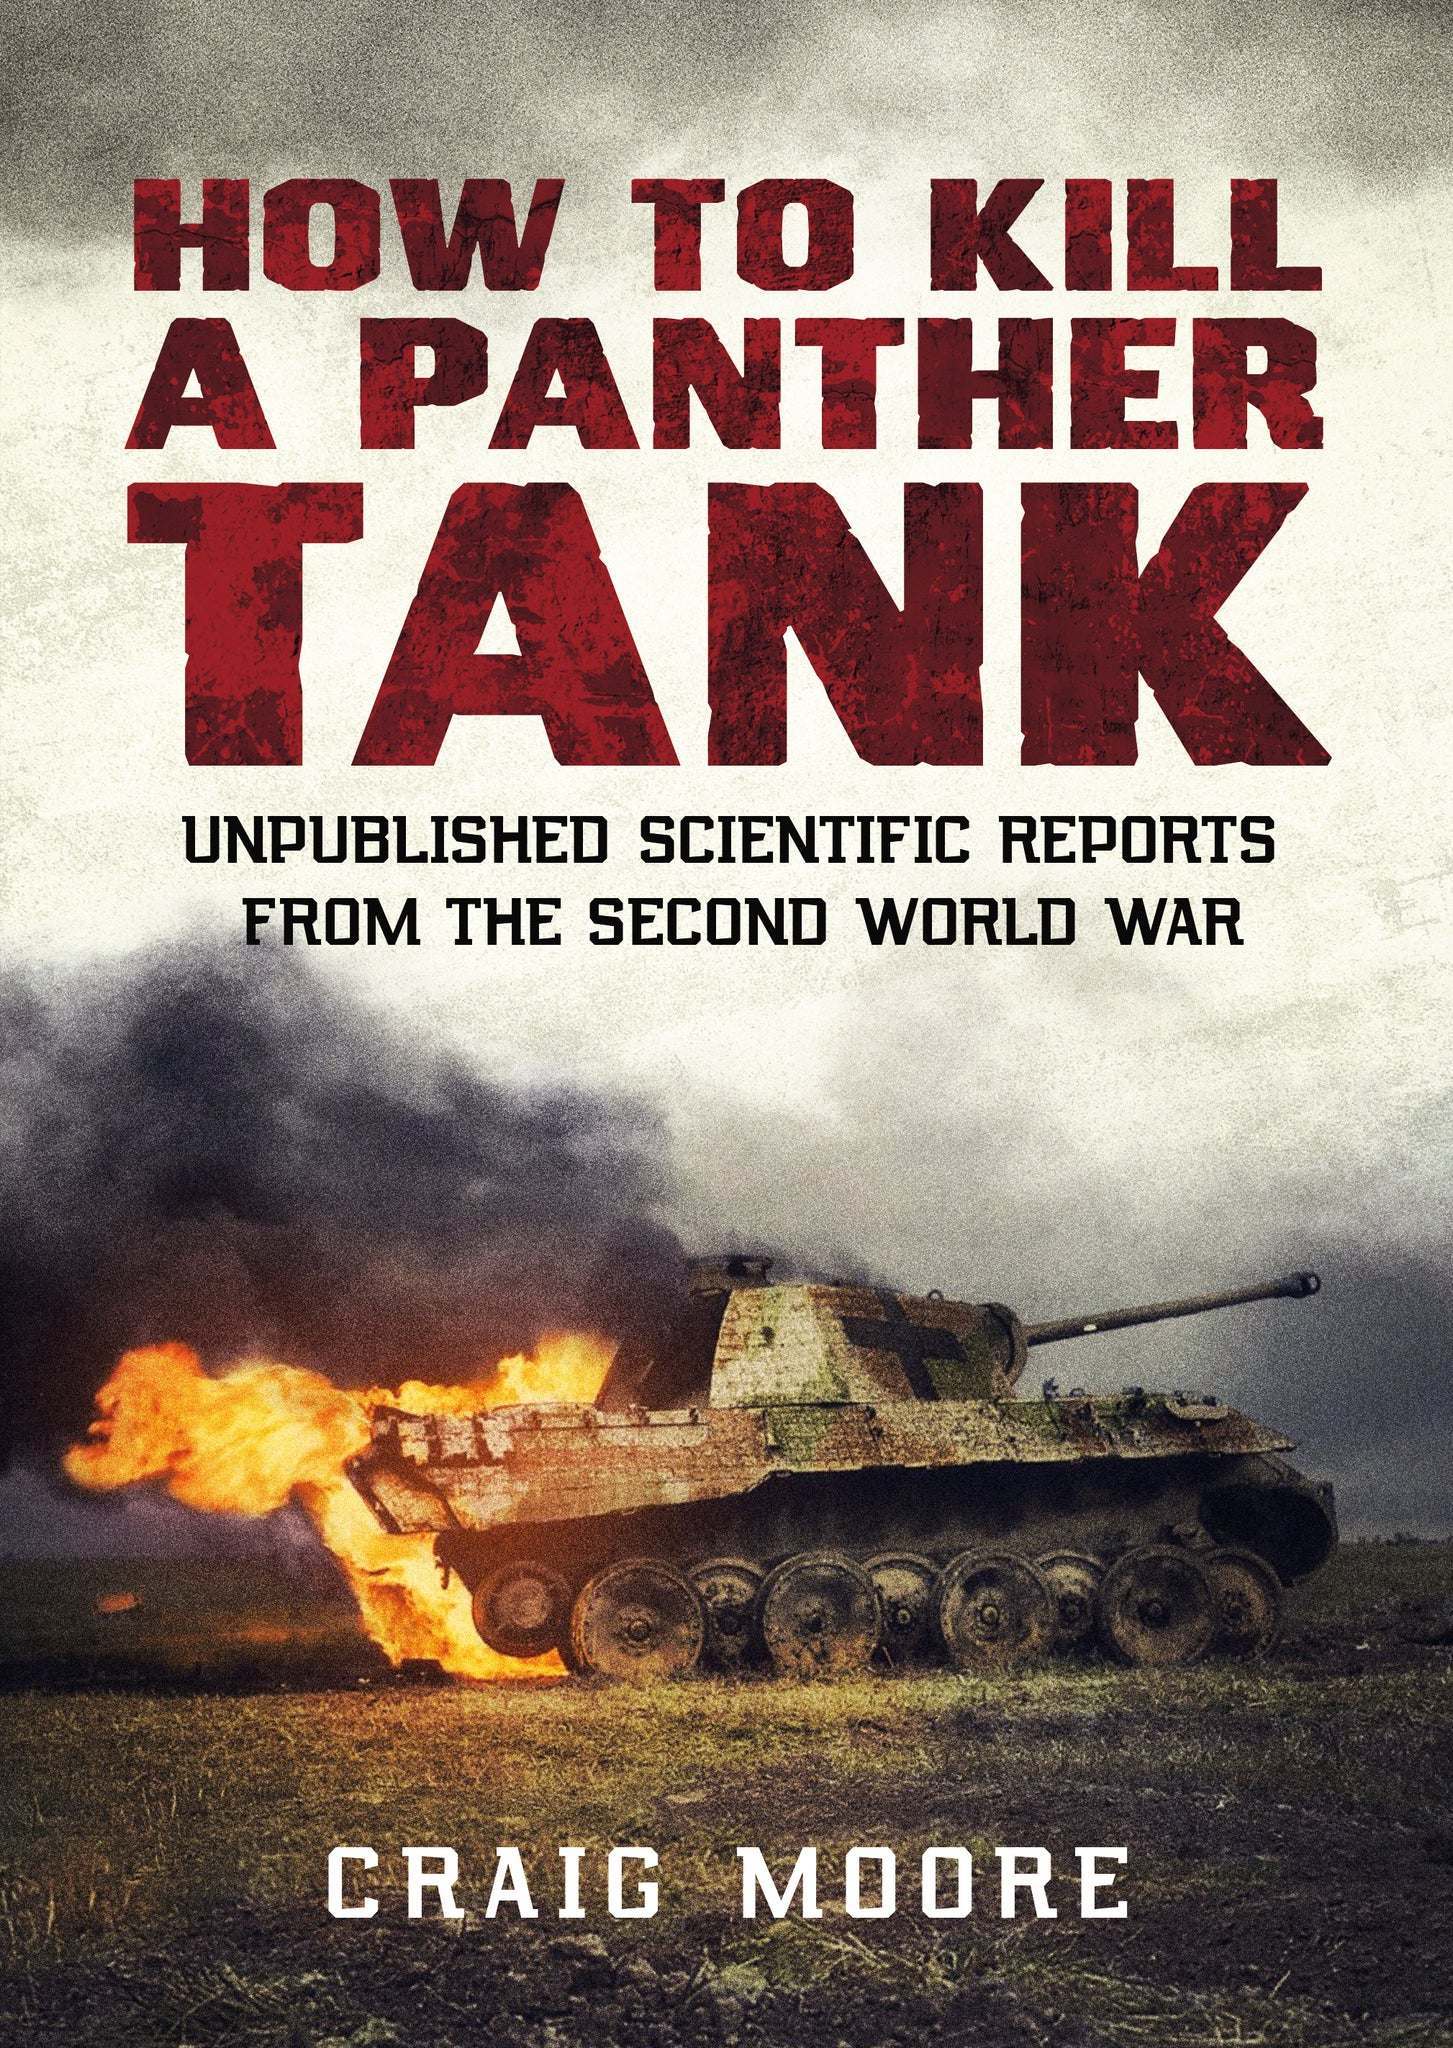 How to Kill a Panther Tank: Unpublished Scientific Reports from the Second World War